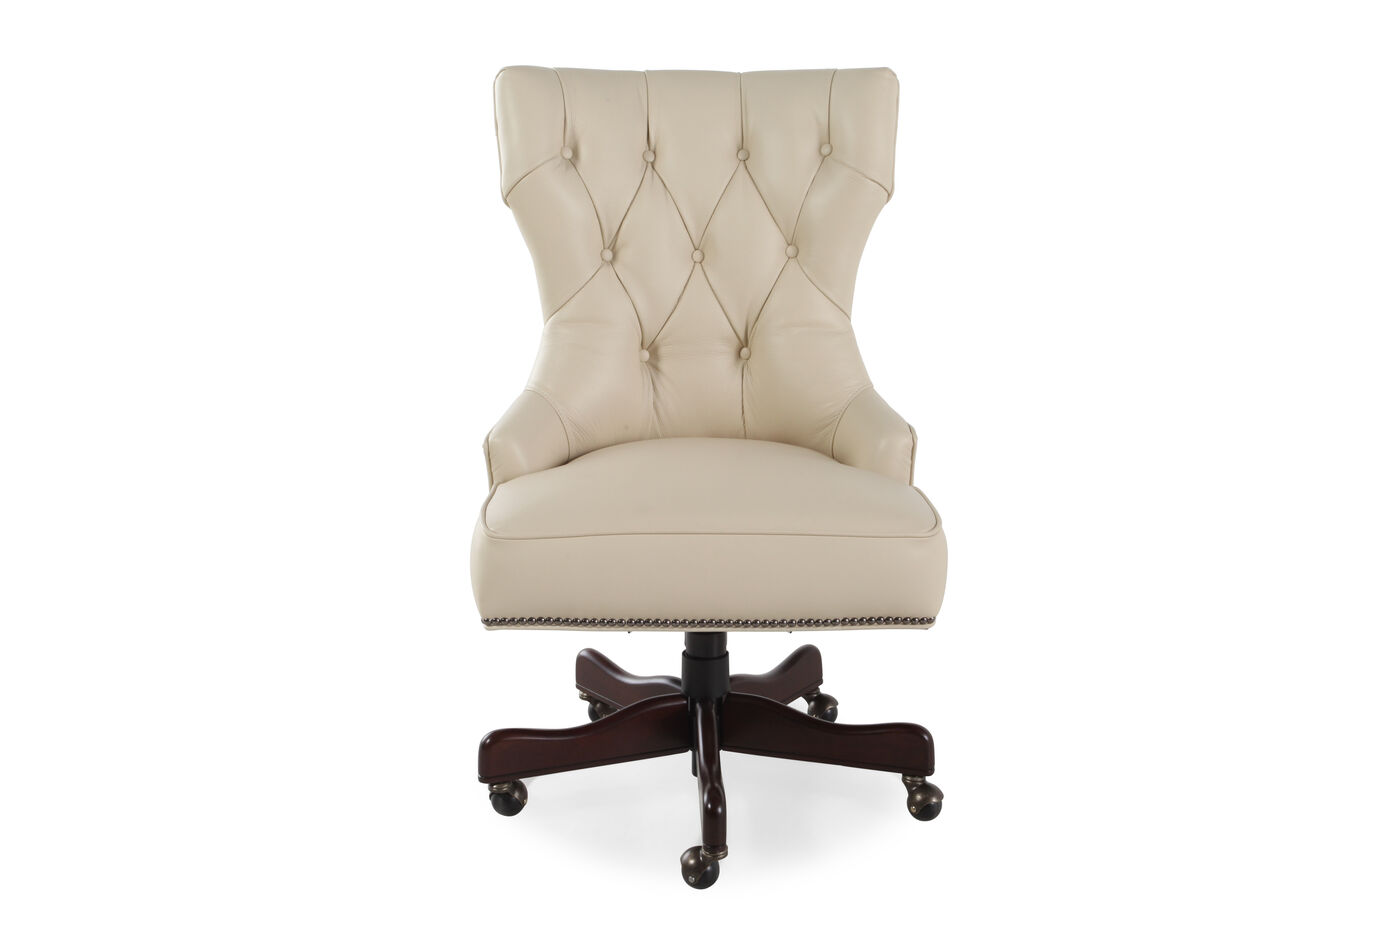 Leather Button-Tufted Swivel Tilt Desk Chair in Ivory | Mathis ...